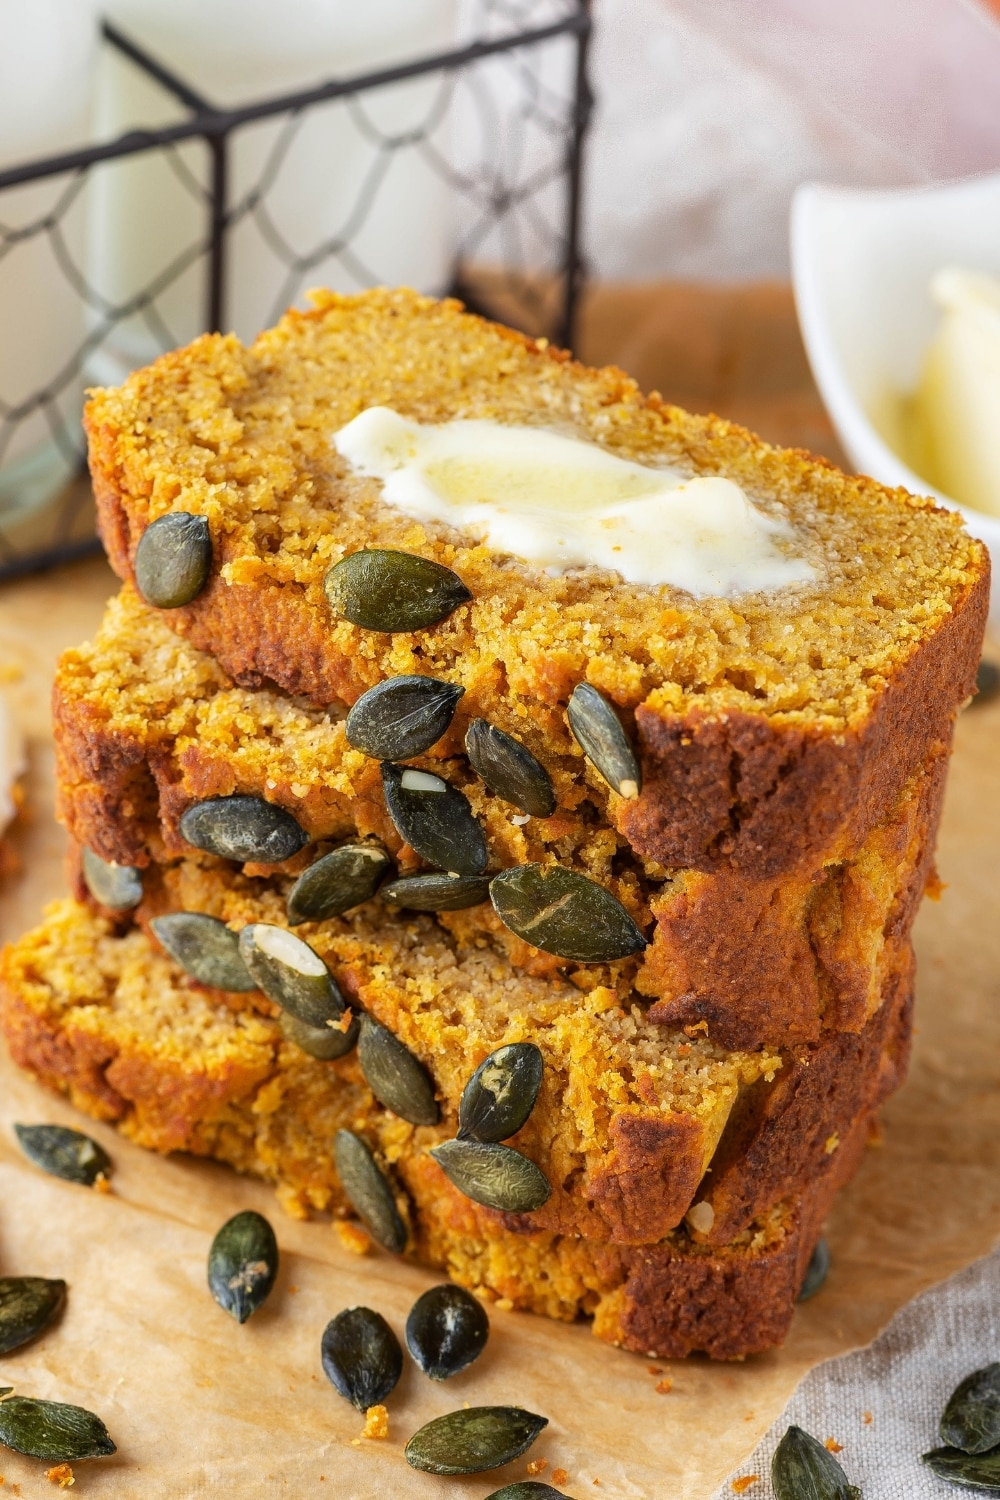 Four slices of pumpkin bread stacked on top of one another on a piece of parchment paper. The top slice has a slab of butter on it and pumpkin seeds in front of the bread.